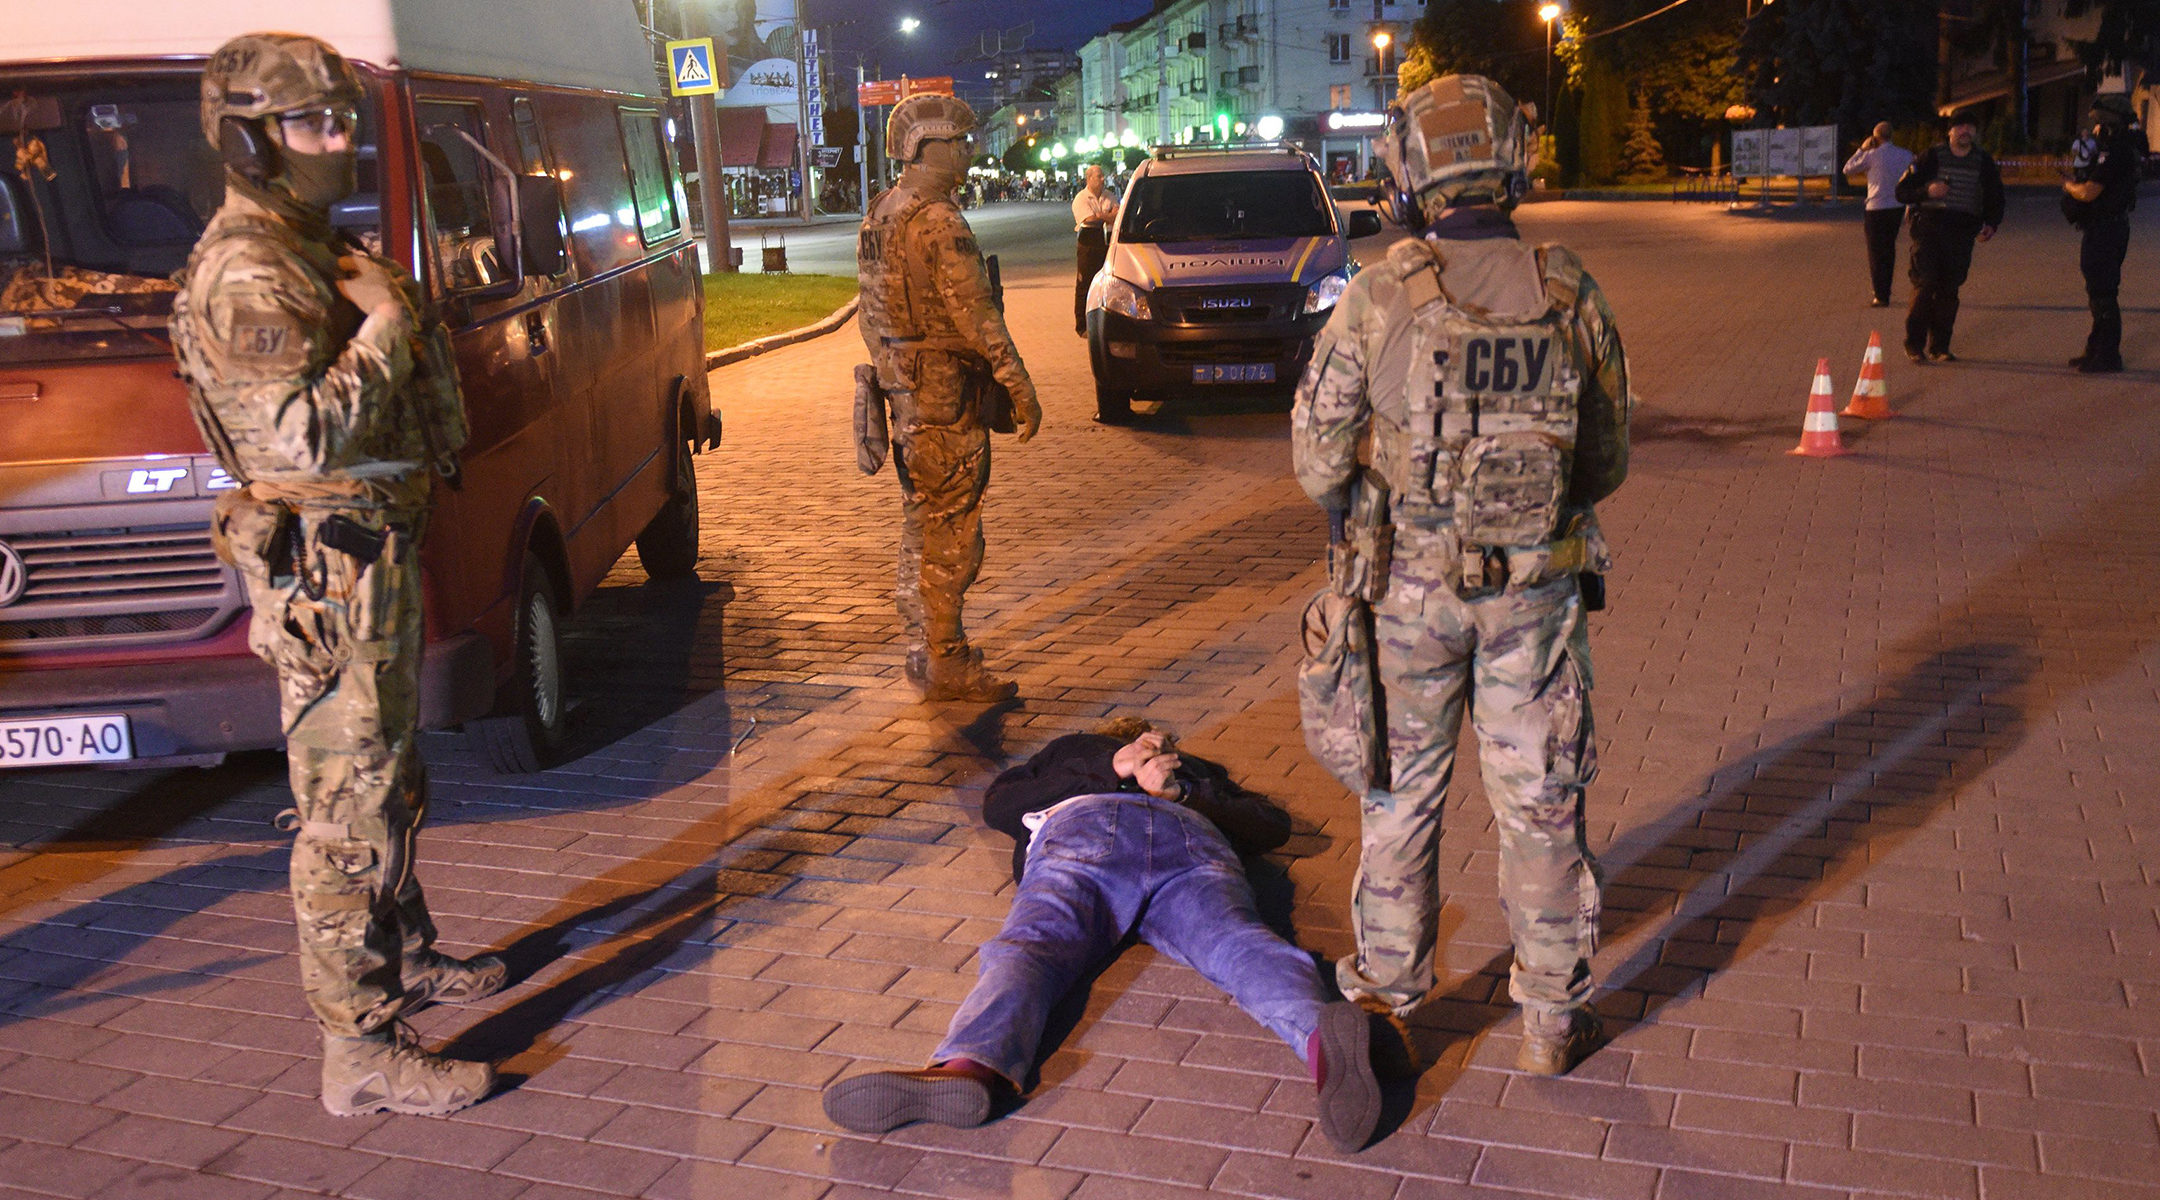 Ukrainian police officers detain a suspected hijacker in Lutsk, Ukraine on July 21, 2020. (Yuriy Dyachyshyn/AFP via Getty Images)